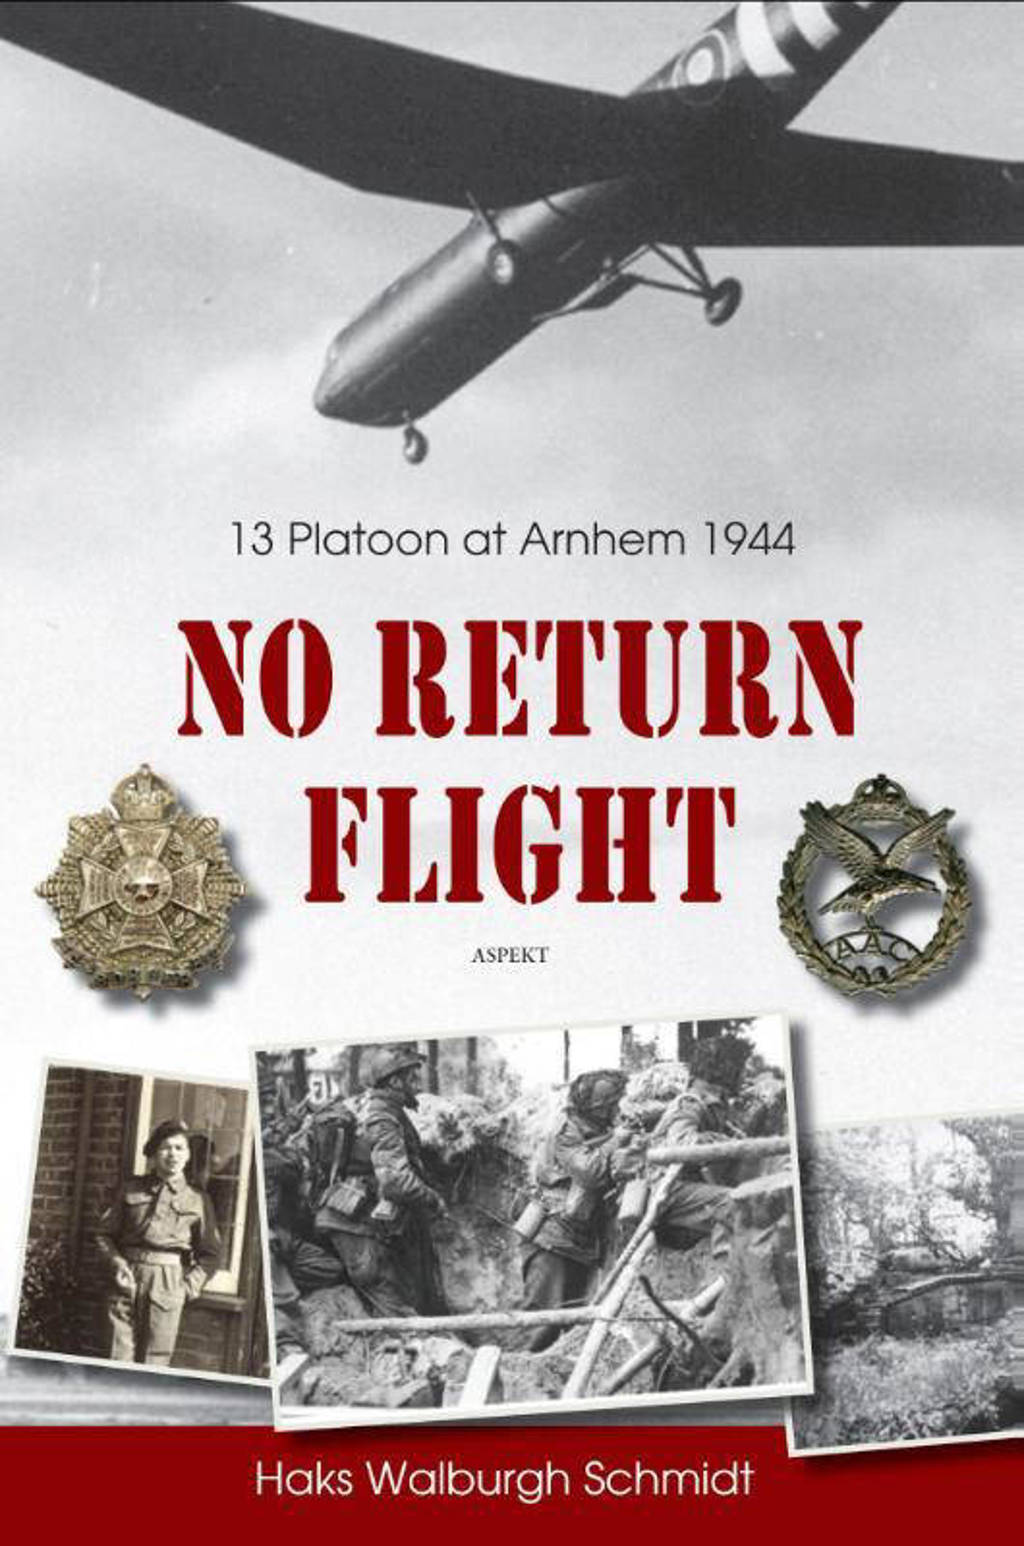 No Return Flight - H. Walburgh Schmidt